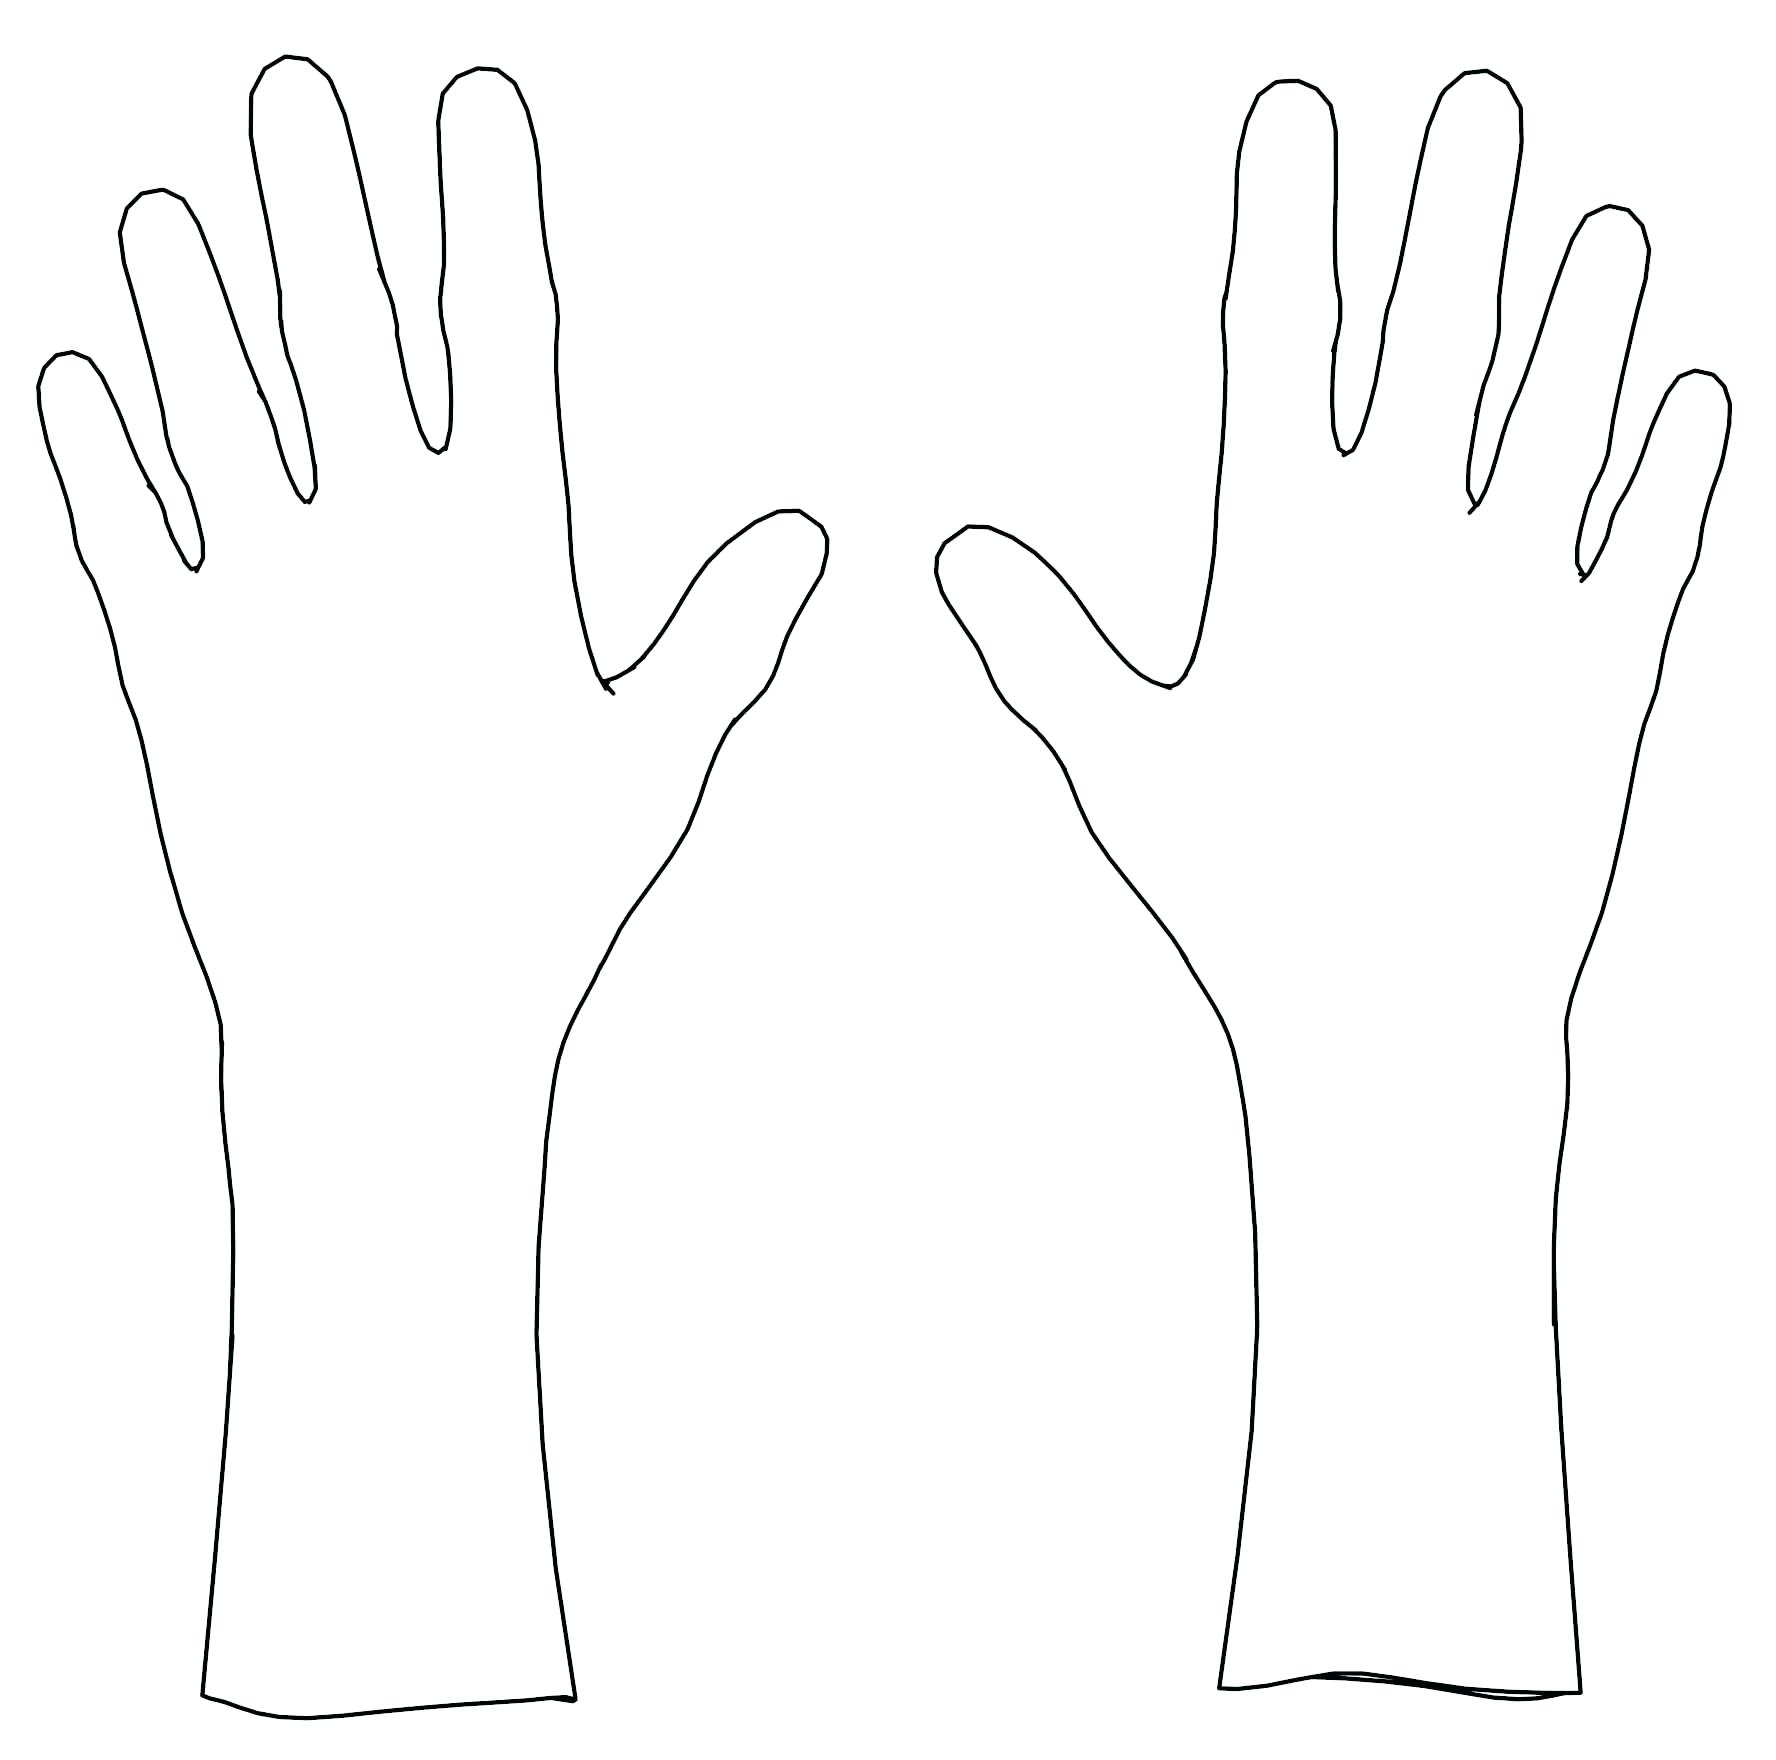 1776x1760 Coloring Coloring Page Of A Hand Handcuffs. Coloring Page Of A Hand